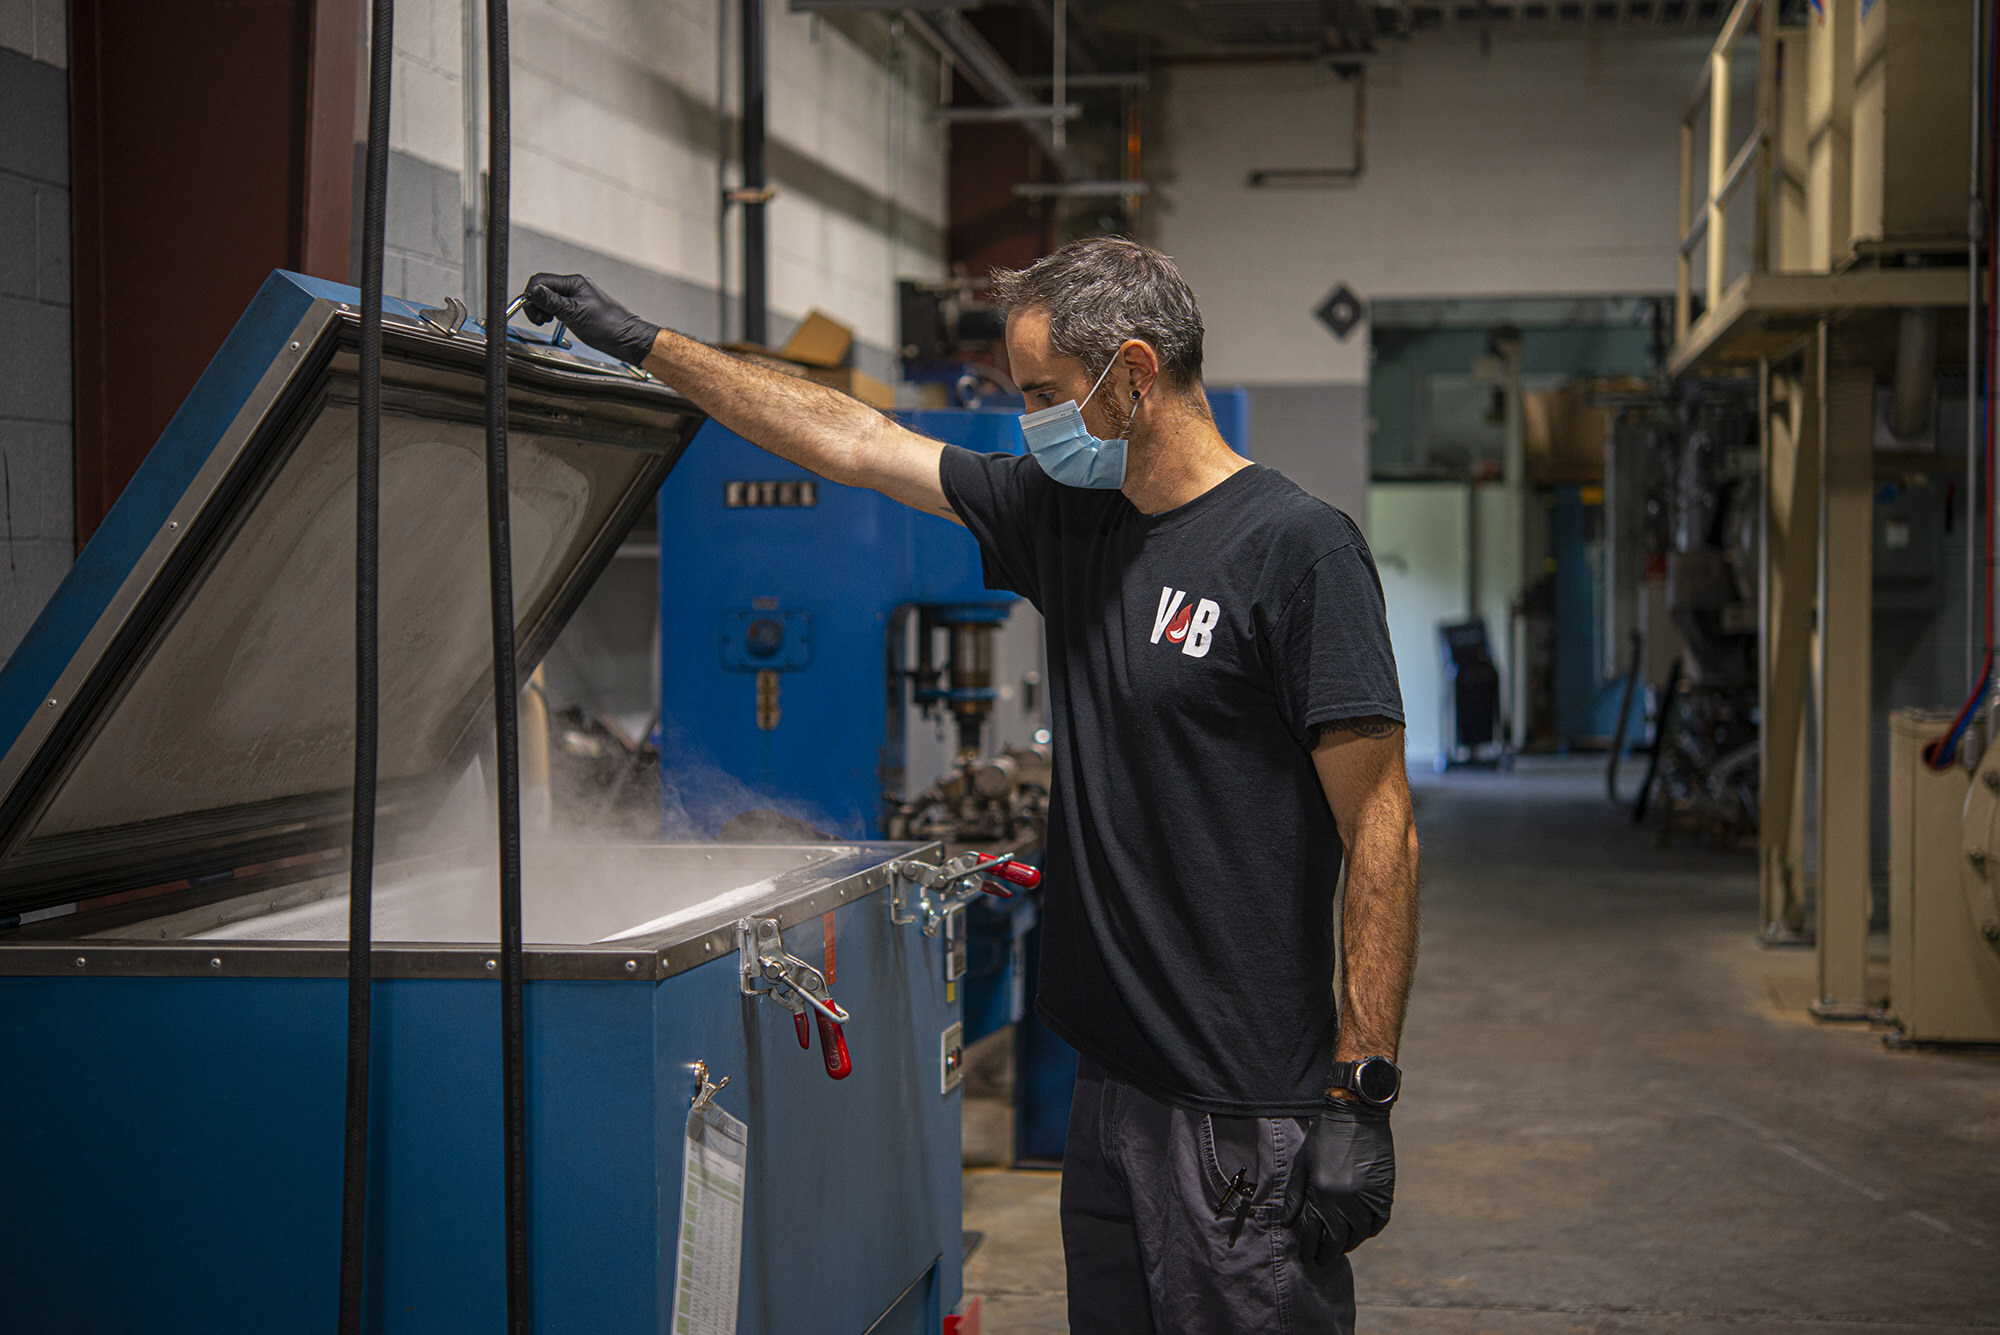 Vacu Brace employee works with cryogenic processing